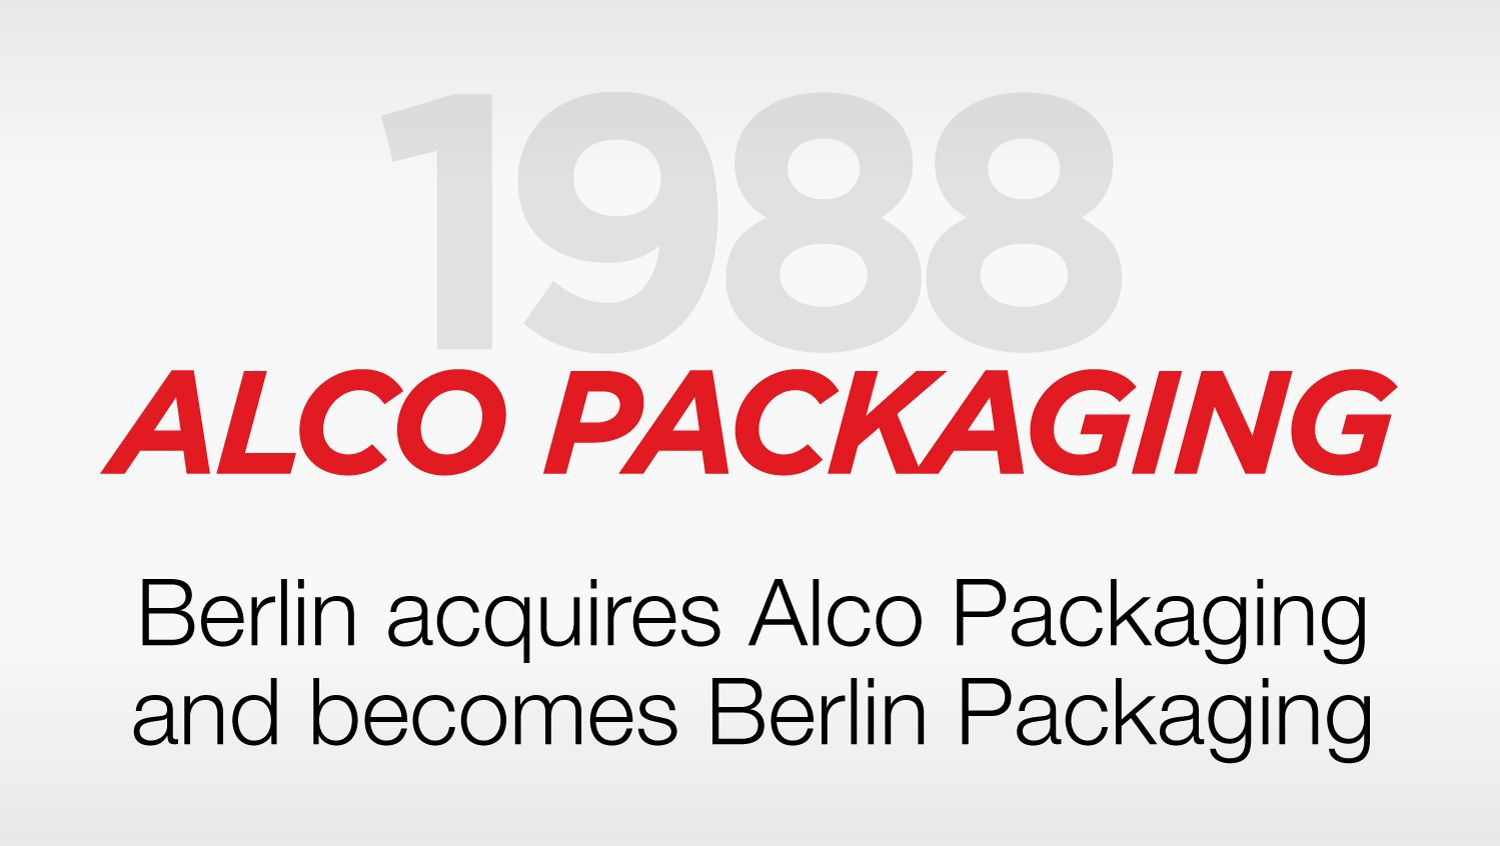 Alco Packaging